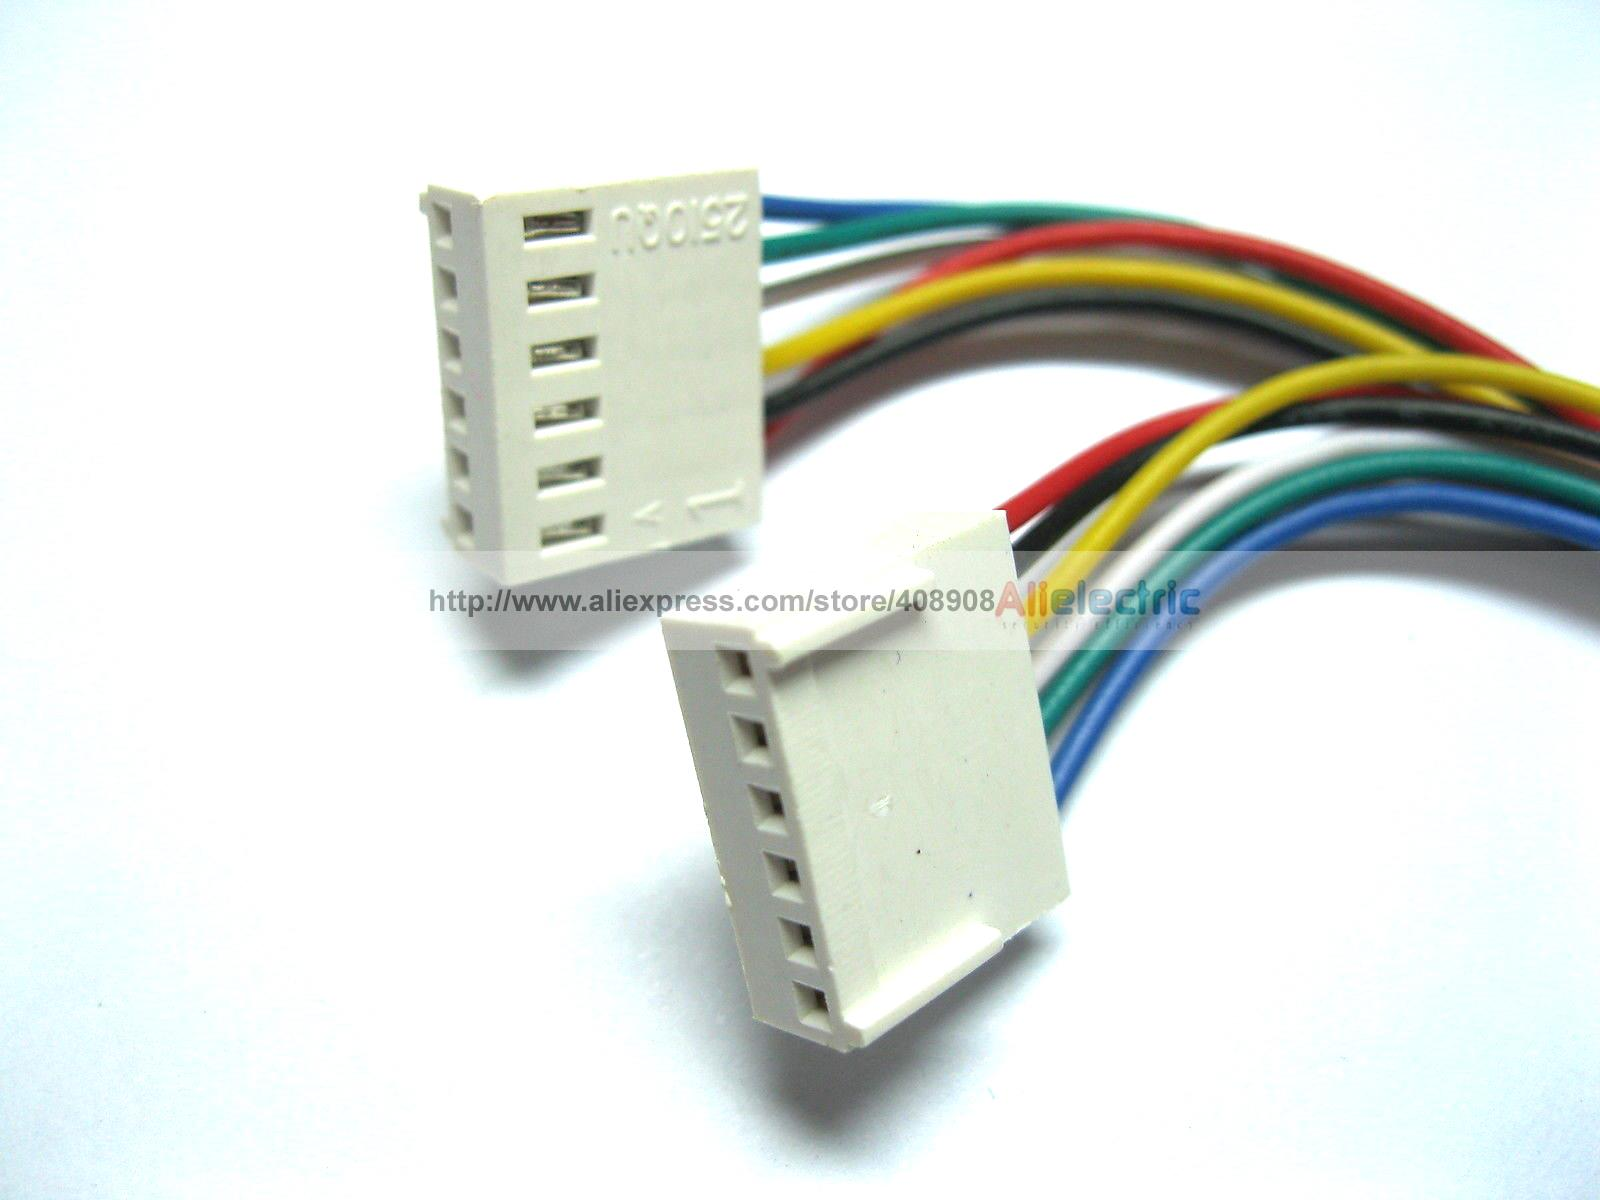 ФОТО 100 Pcs 2510 2.54mm Pitch 6 Pin Female Connector with 26AWG 300mm Leads Cable